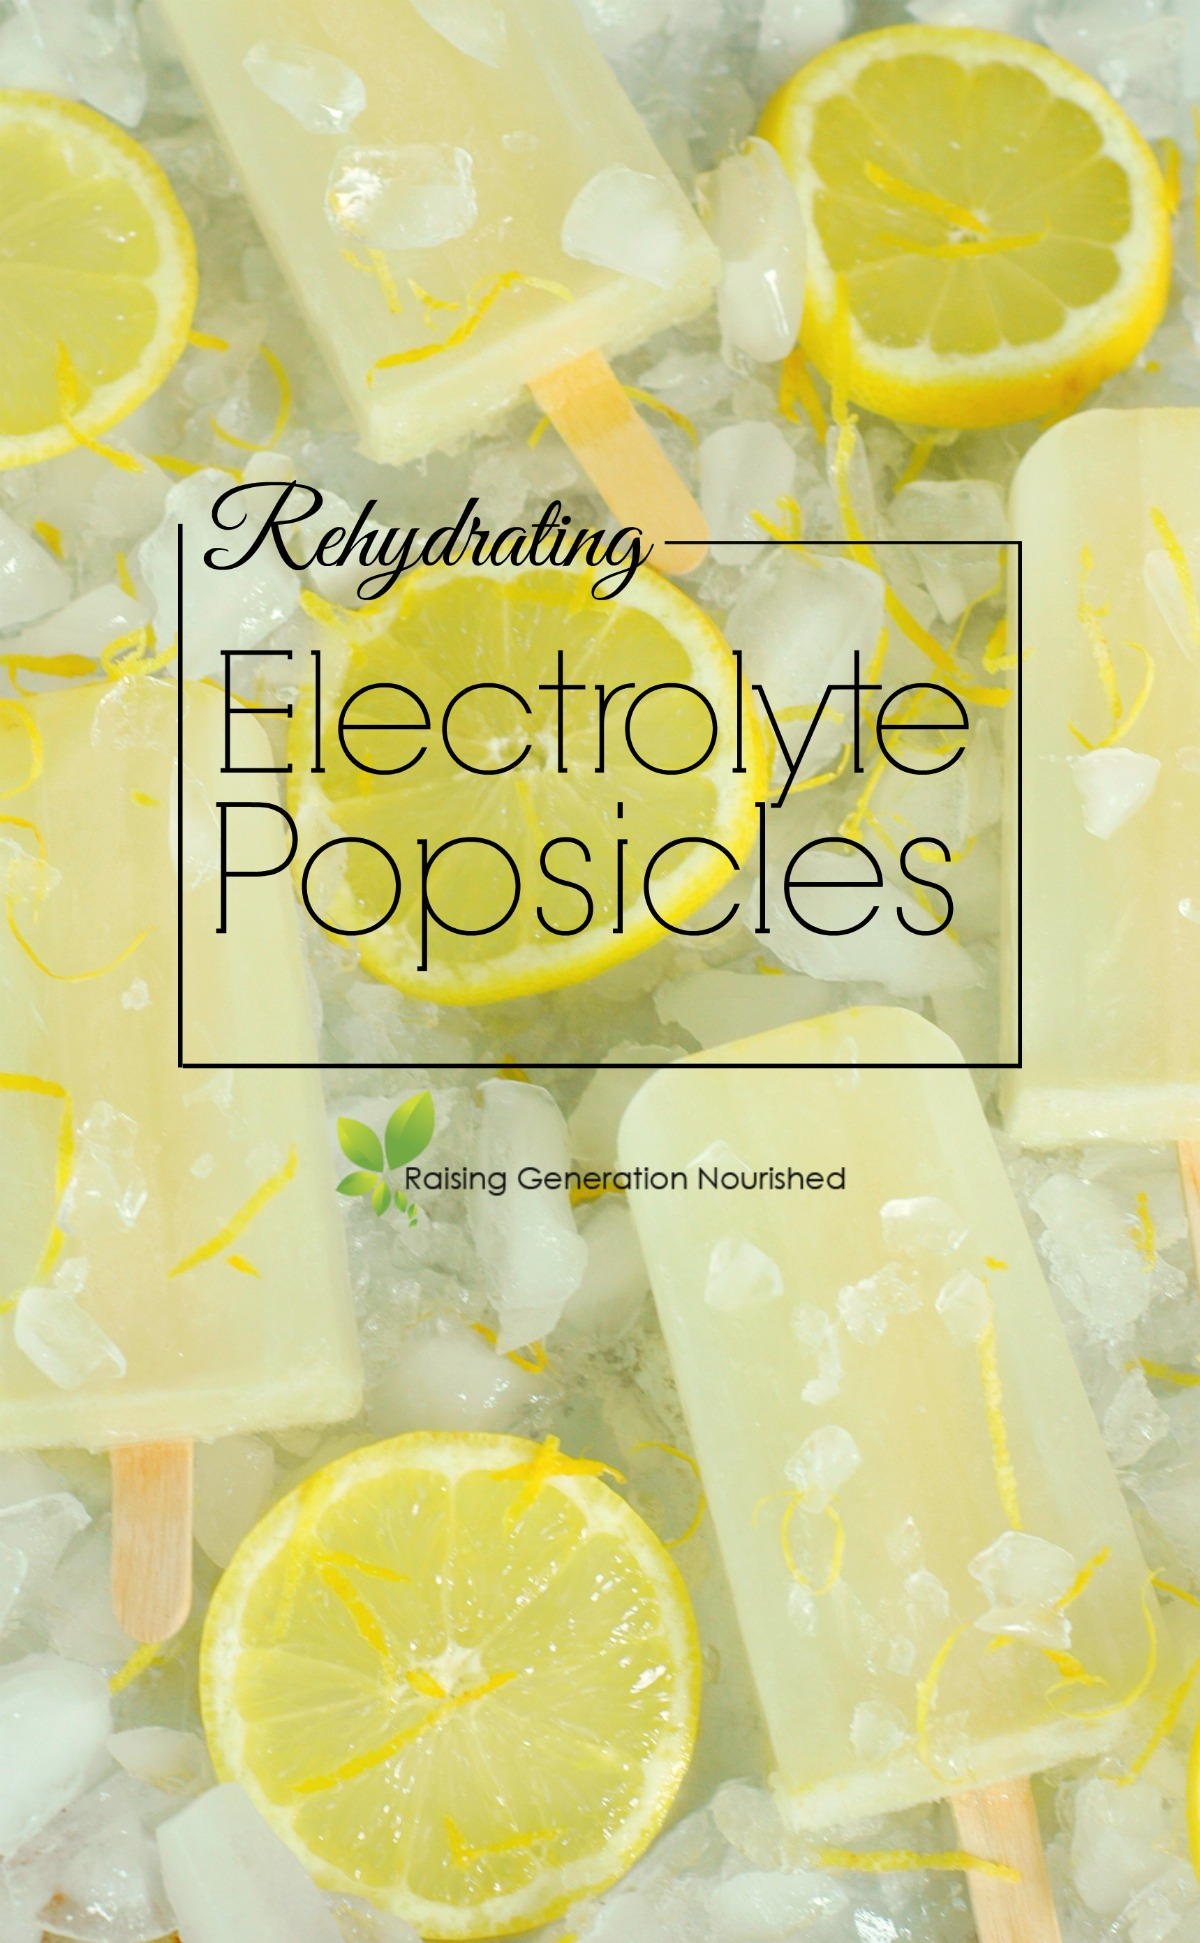 Rehydrating Eletrolyte Popsicles